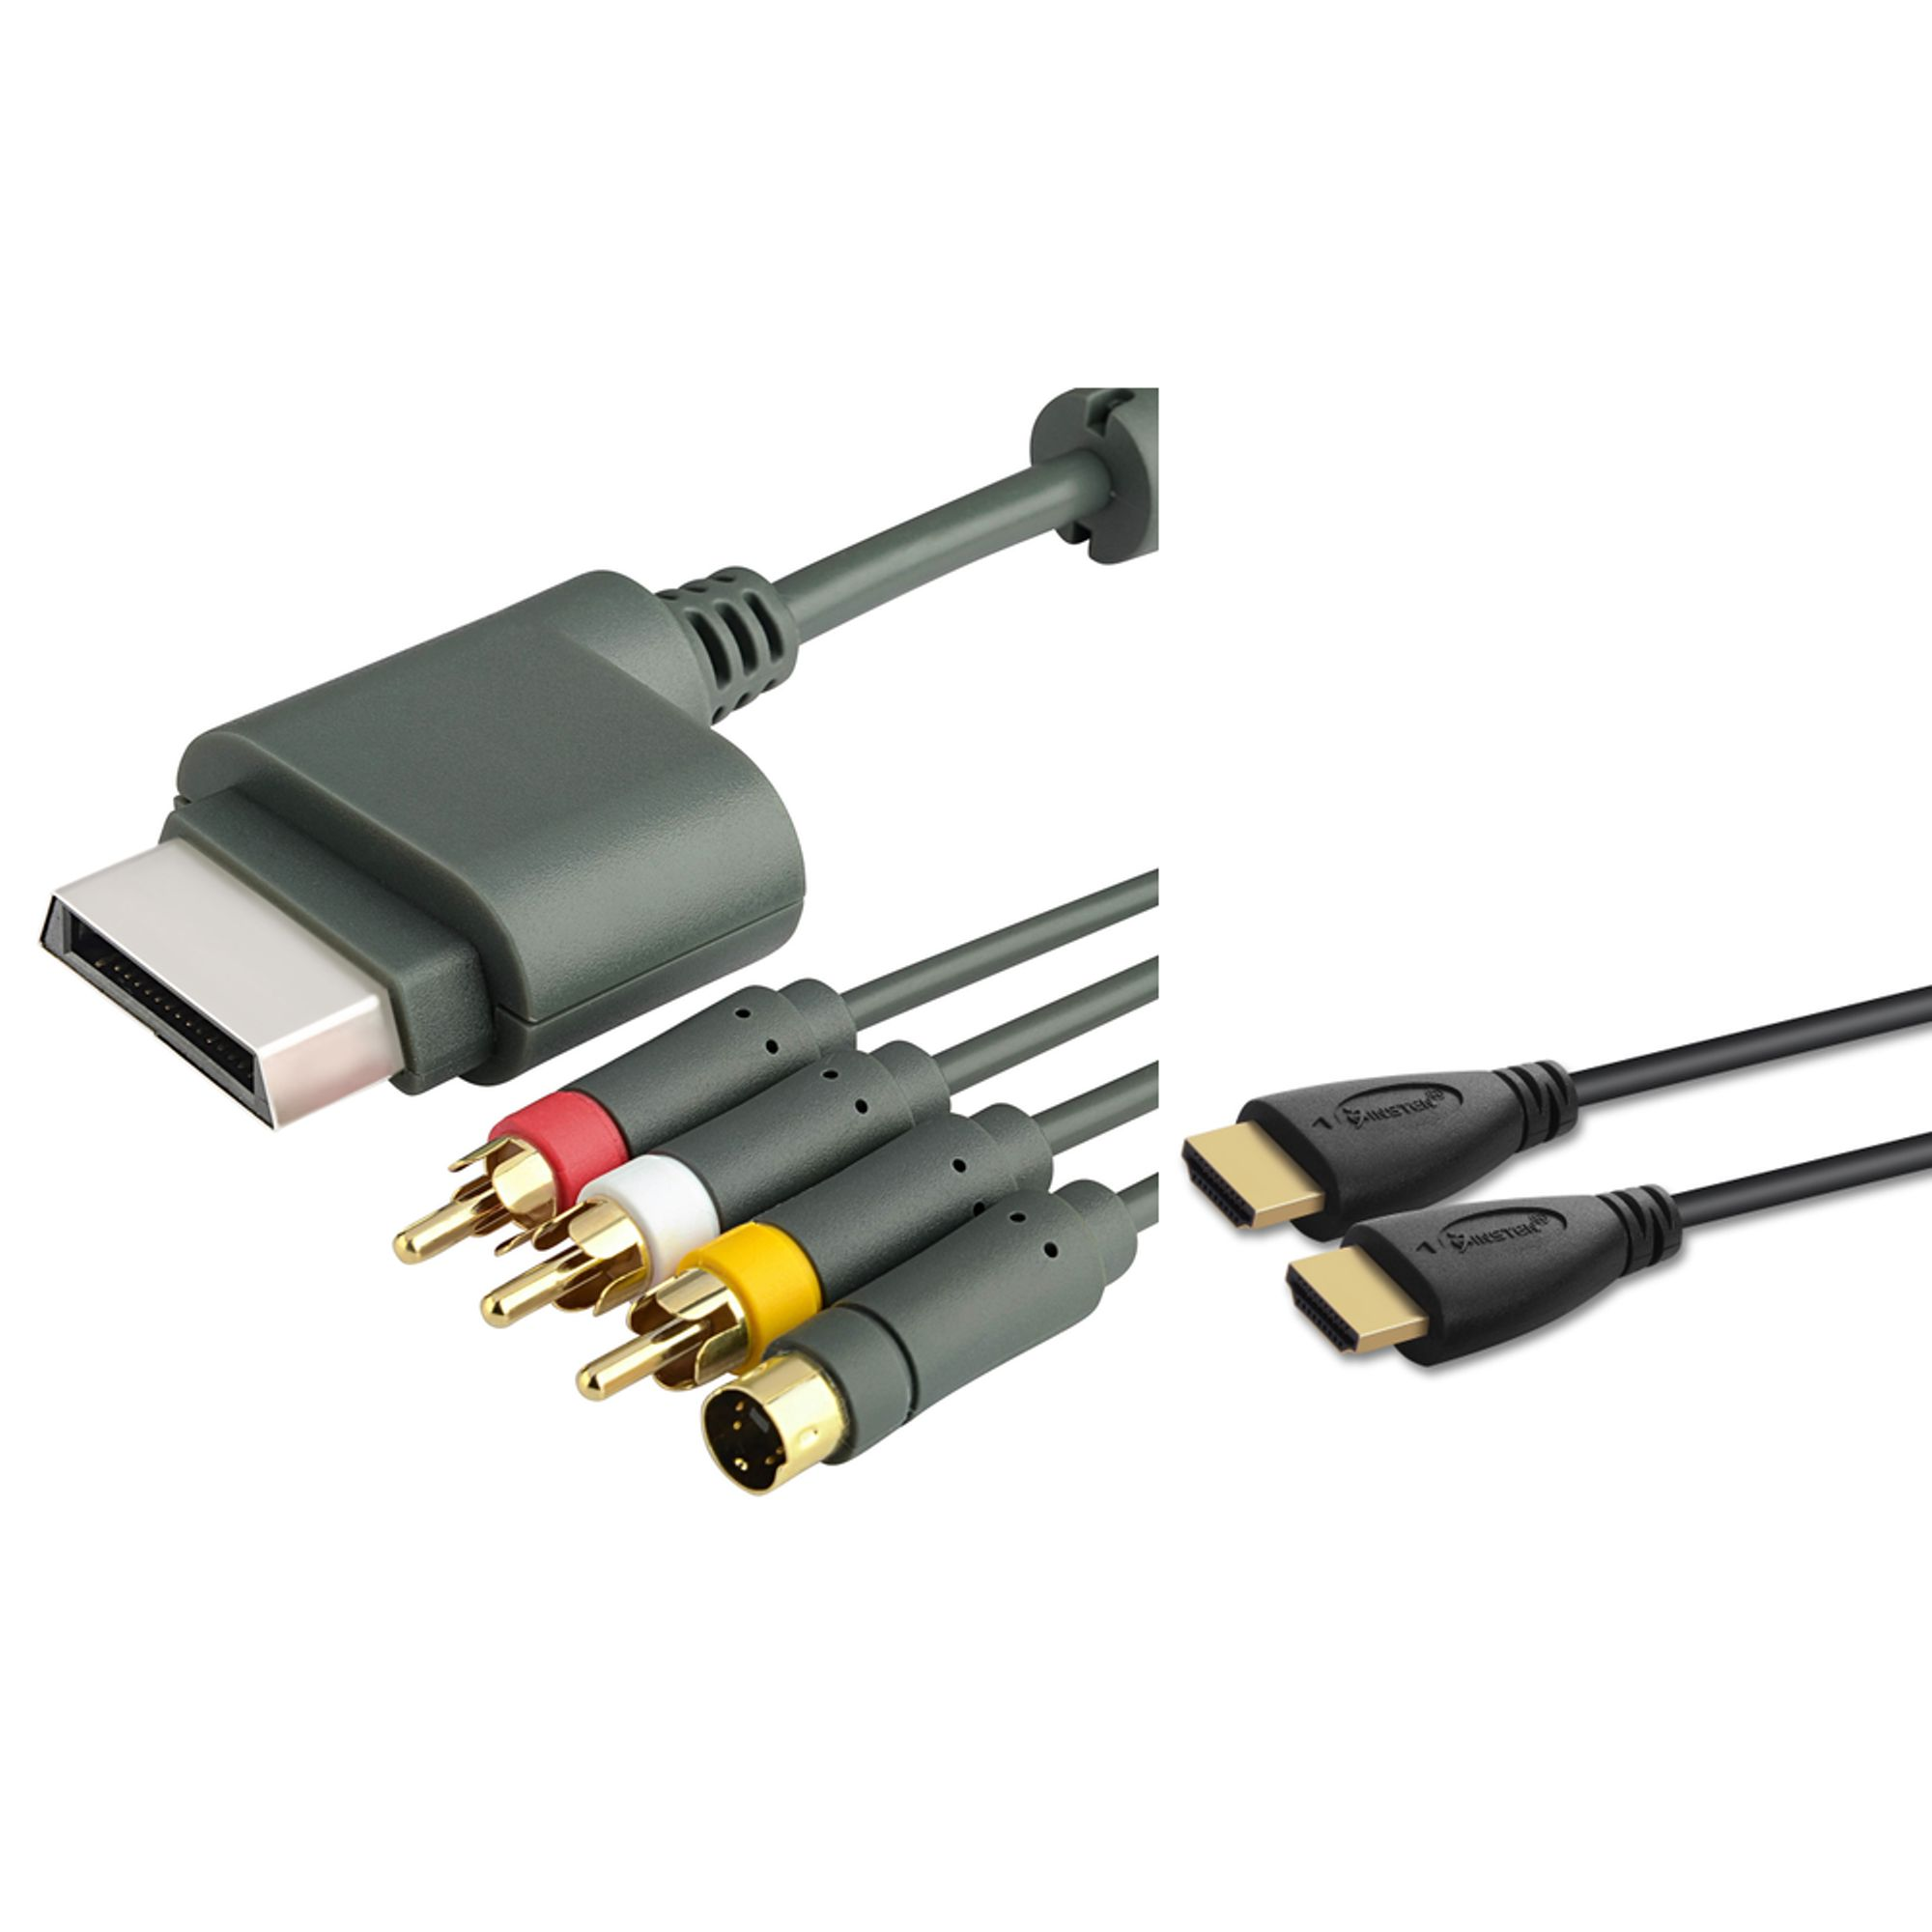 Insten S-Video Composite 3 RCA Adapter Cable Cord+10ft 10' Hdmi Cable for Xbox 360 HDTV